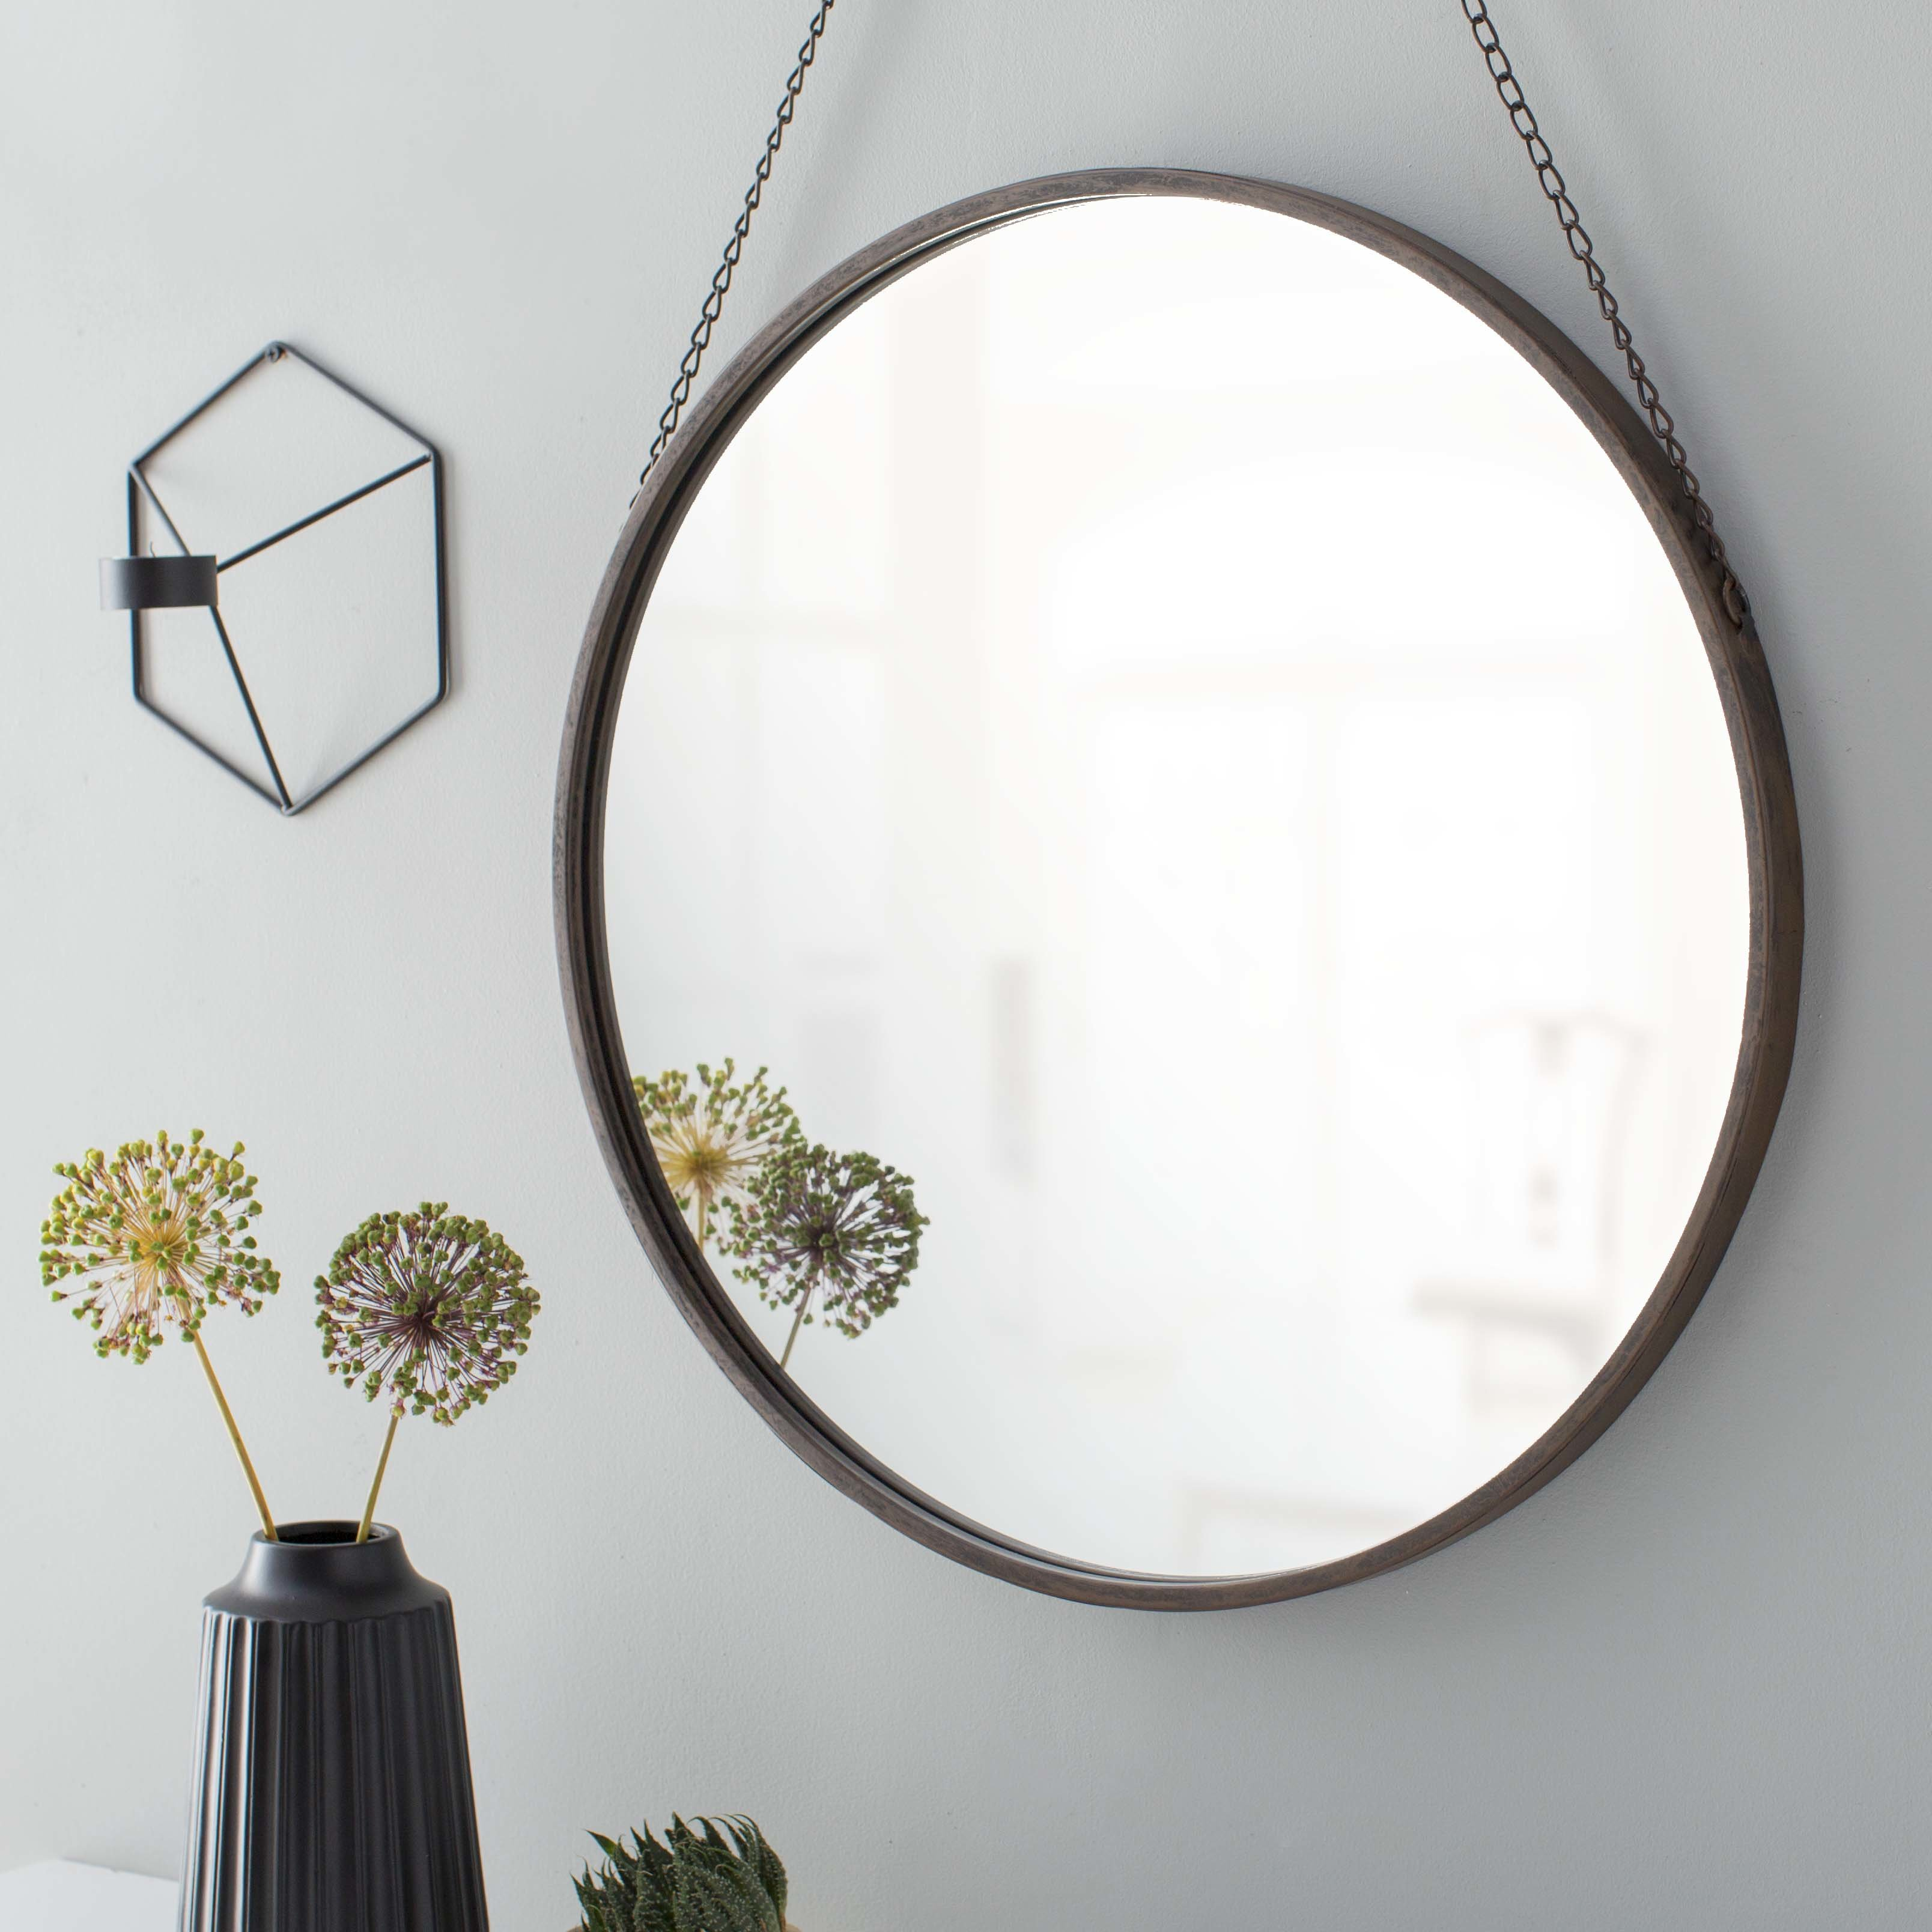 Hardison With Chain Hanger Accent Mirror with Swagger Accent Wall Mirrors (Image 9 of 30)